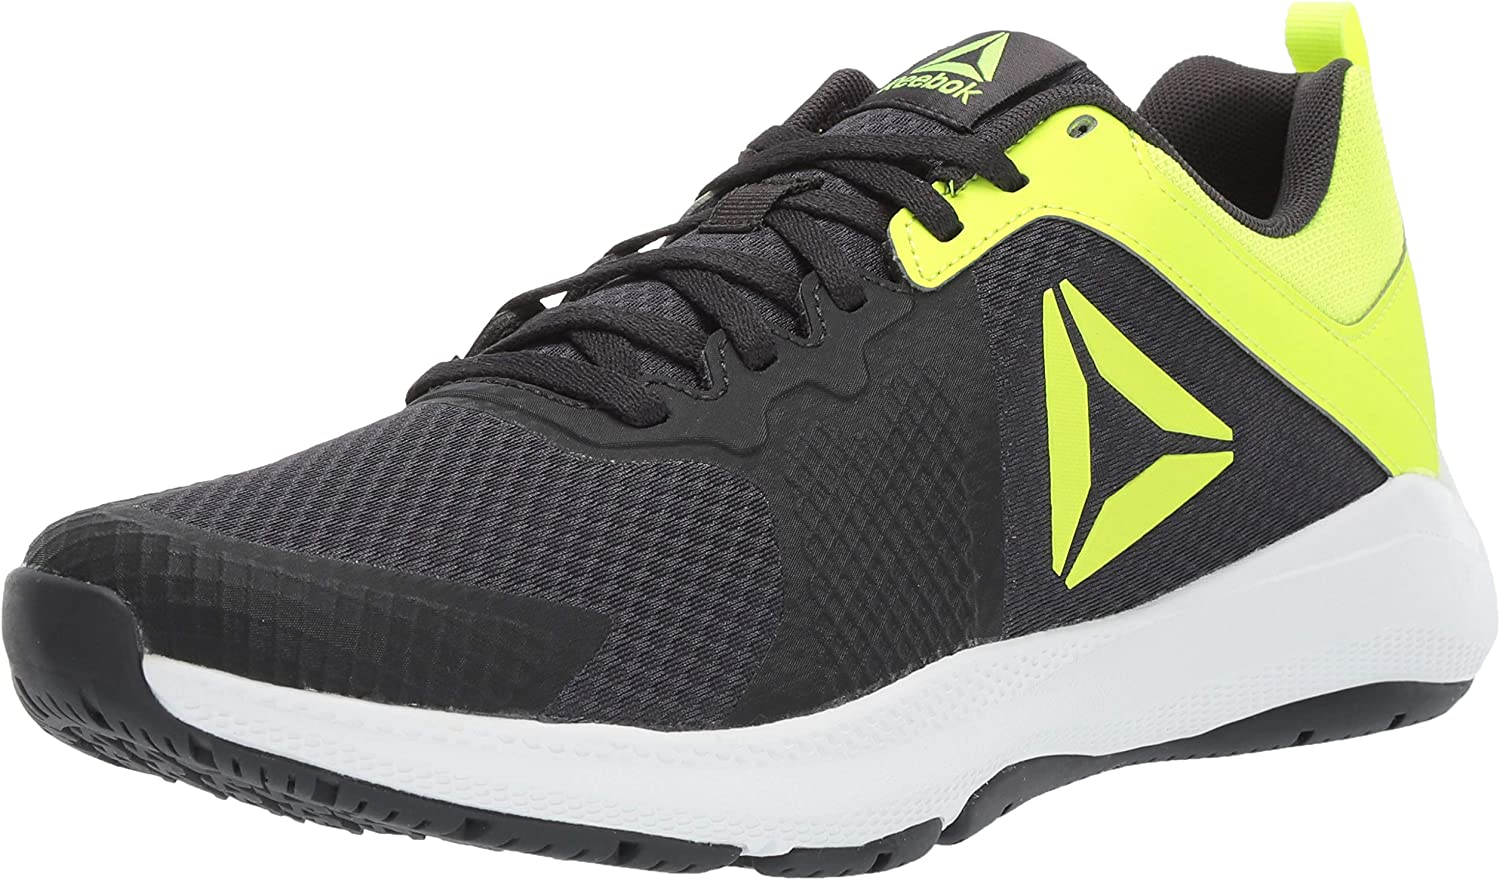 Reebok Men's Edge Series Tr Cross Trainer